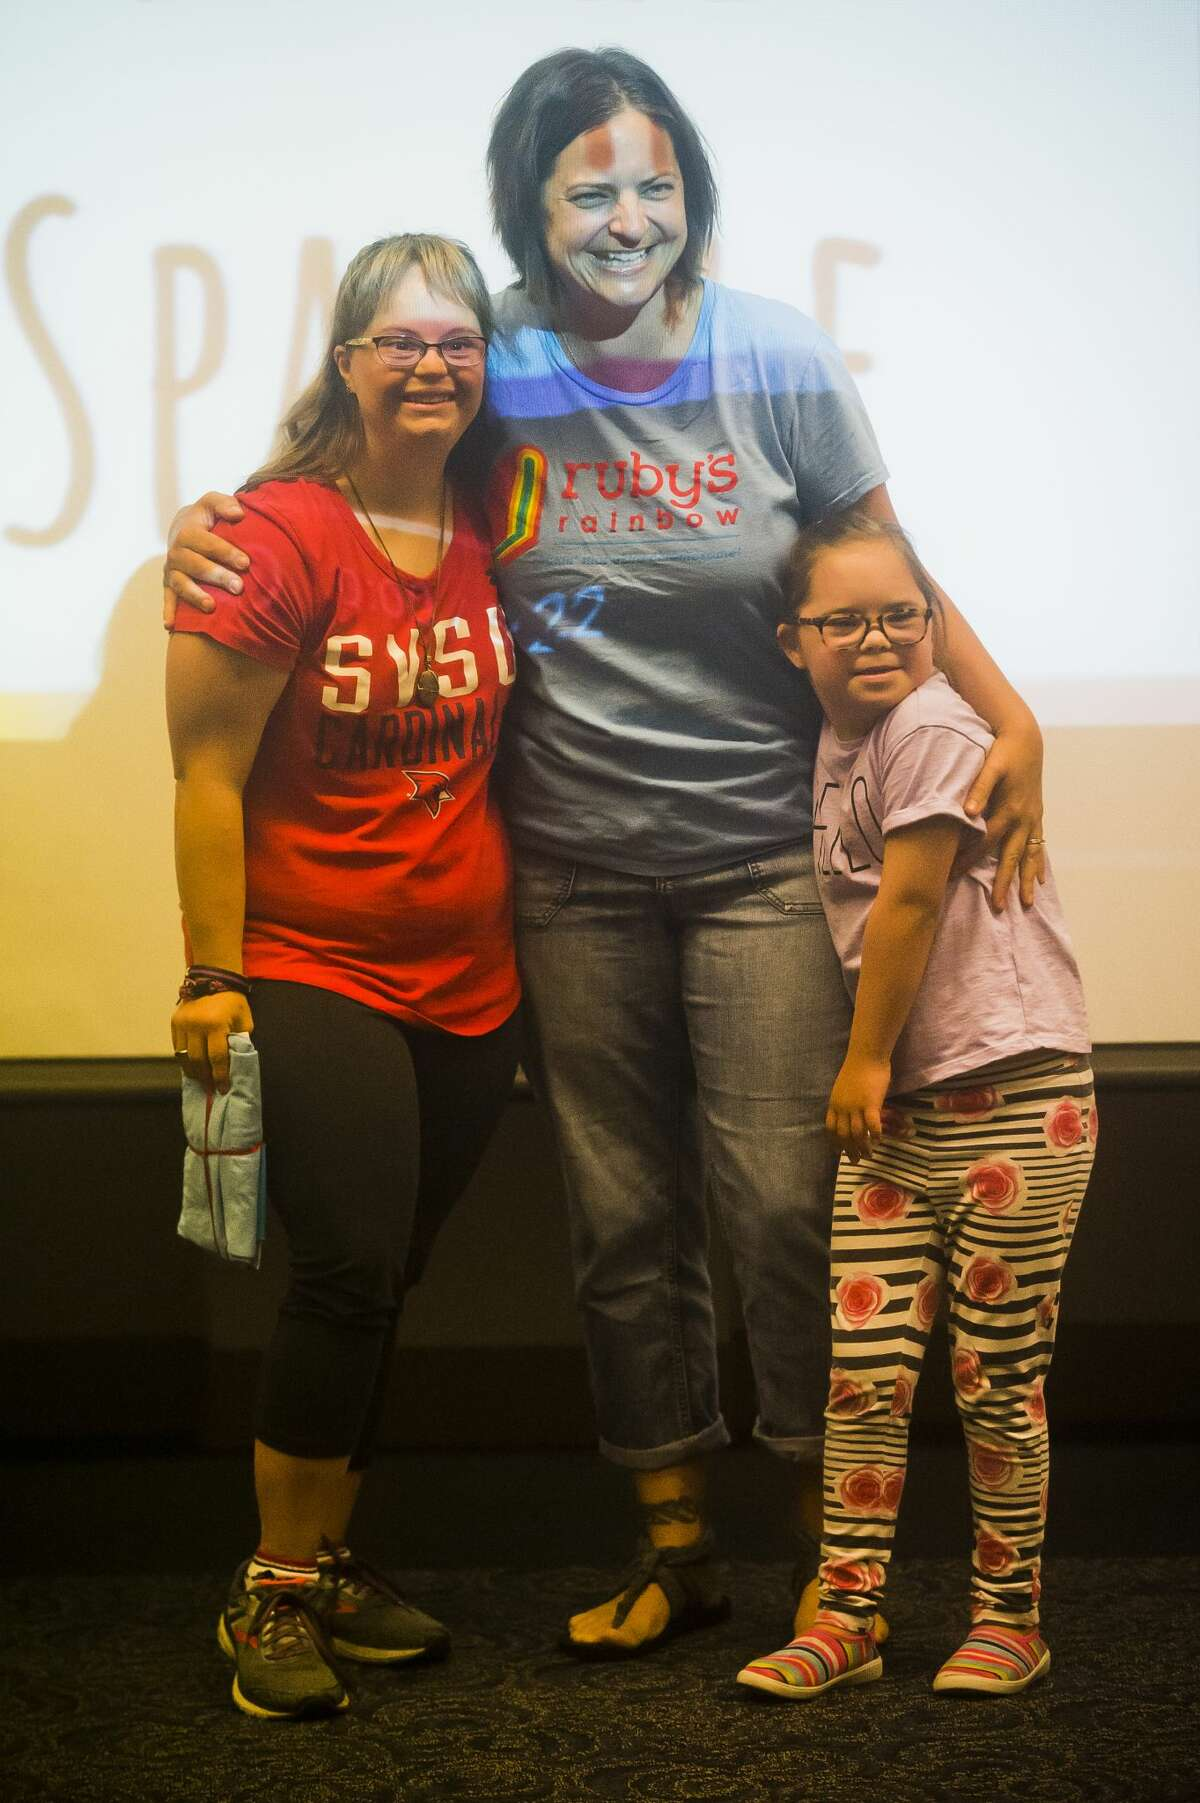 Jessica Day poses for a photo with Liz Plachta, center, and Ruby Plachta, right, after walking into a surprise celebration during which Day was told she is receiving the Ruby's Rainbow Scholarship on Friday, Aug. 3, 2018 at Saginaw Valley State University. Ruby's Rainbow provides scholarships for adults with Down Syndrome who have dreams of pursuing higher education. (Katy Kildee/kkildee@mdn.net)